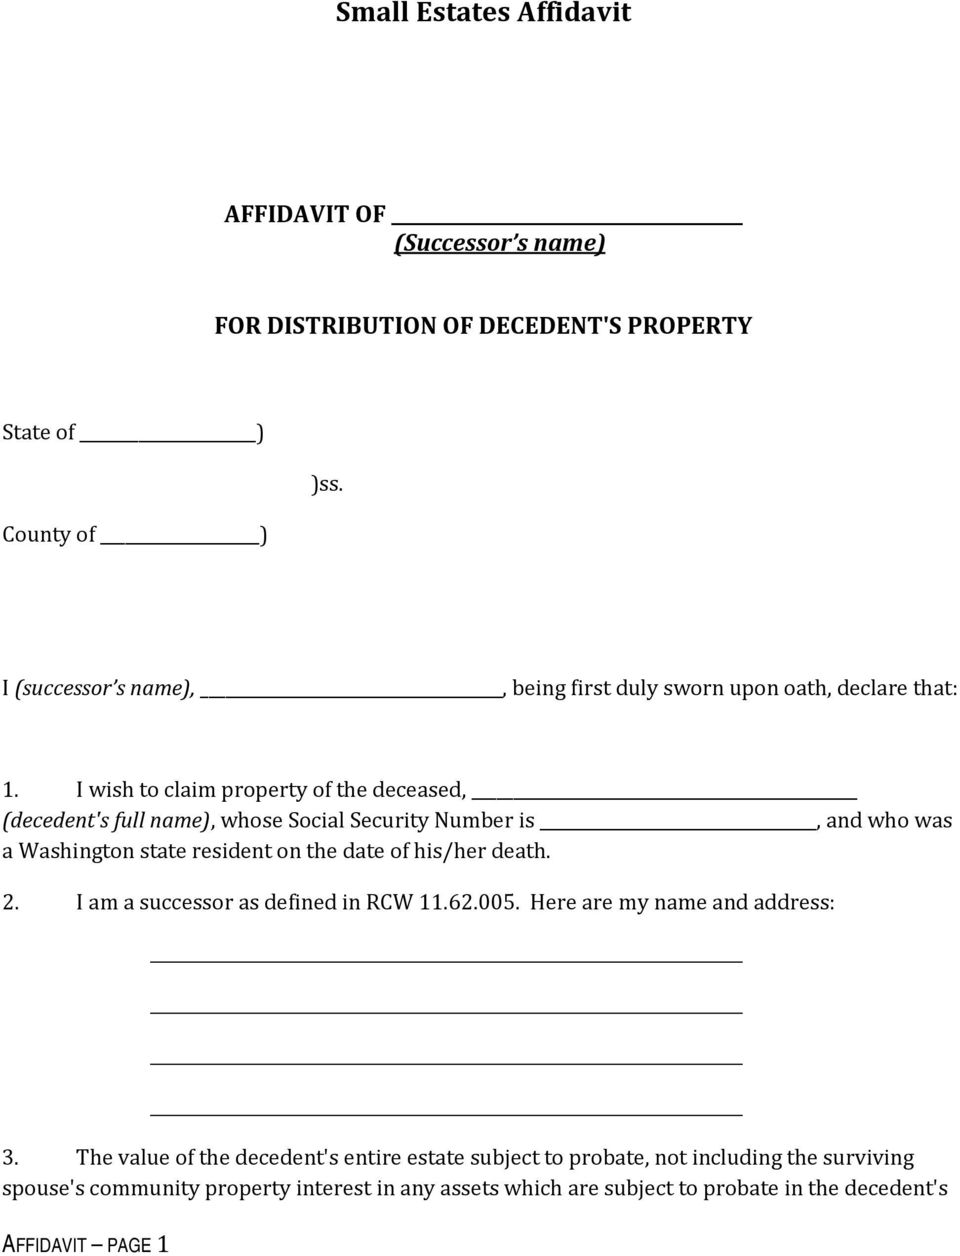 How to claim the personal property of someone who has died do it i wish to claim property of the deceased decedents full name whose solutioingenieria Images